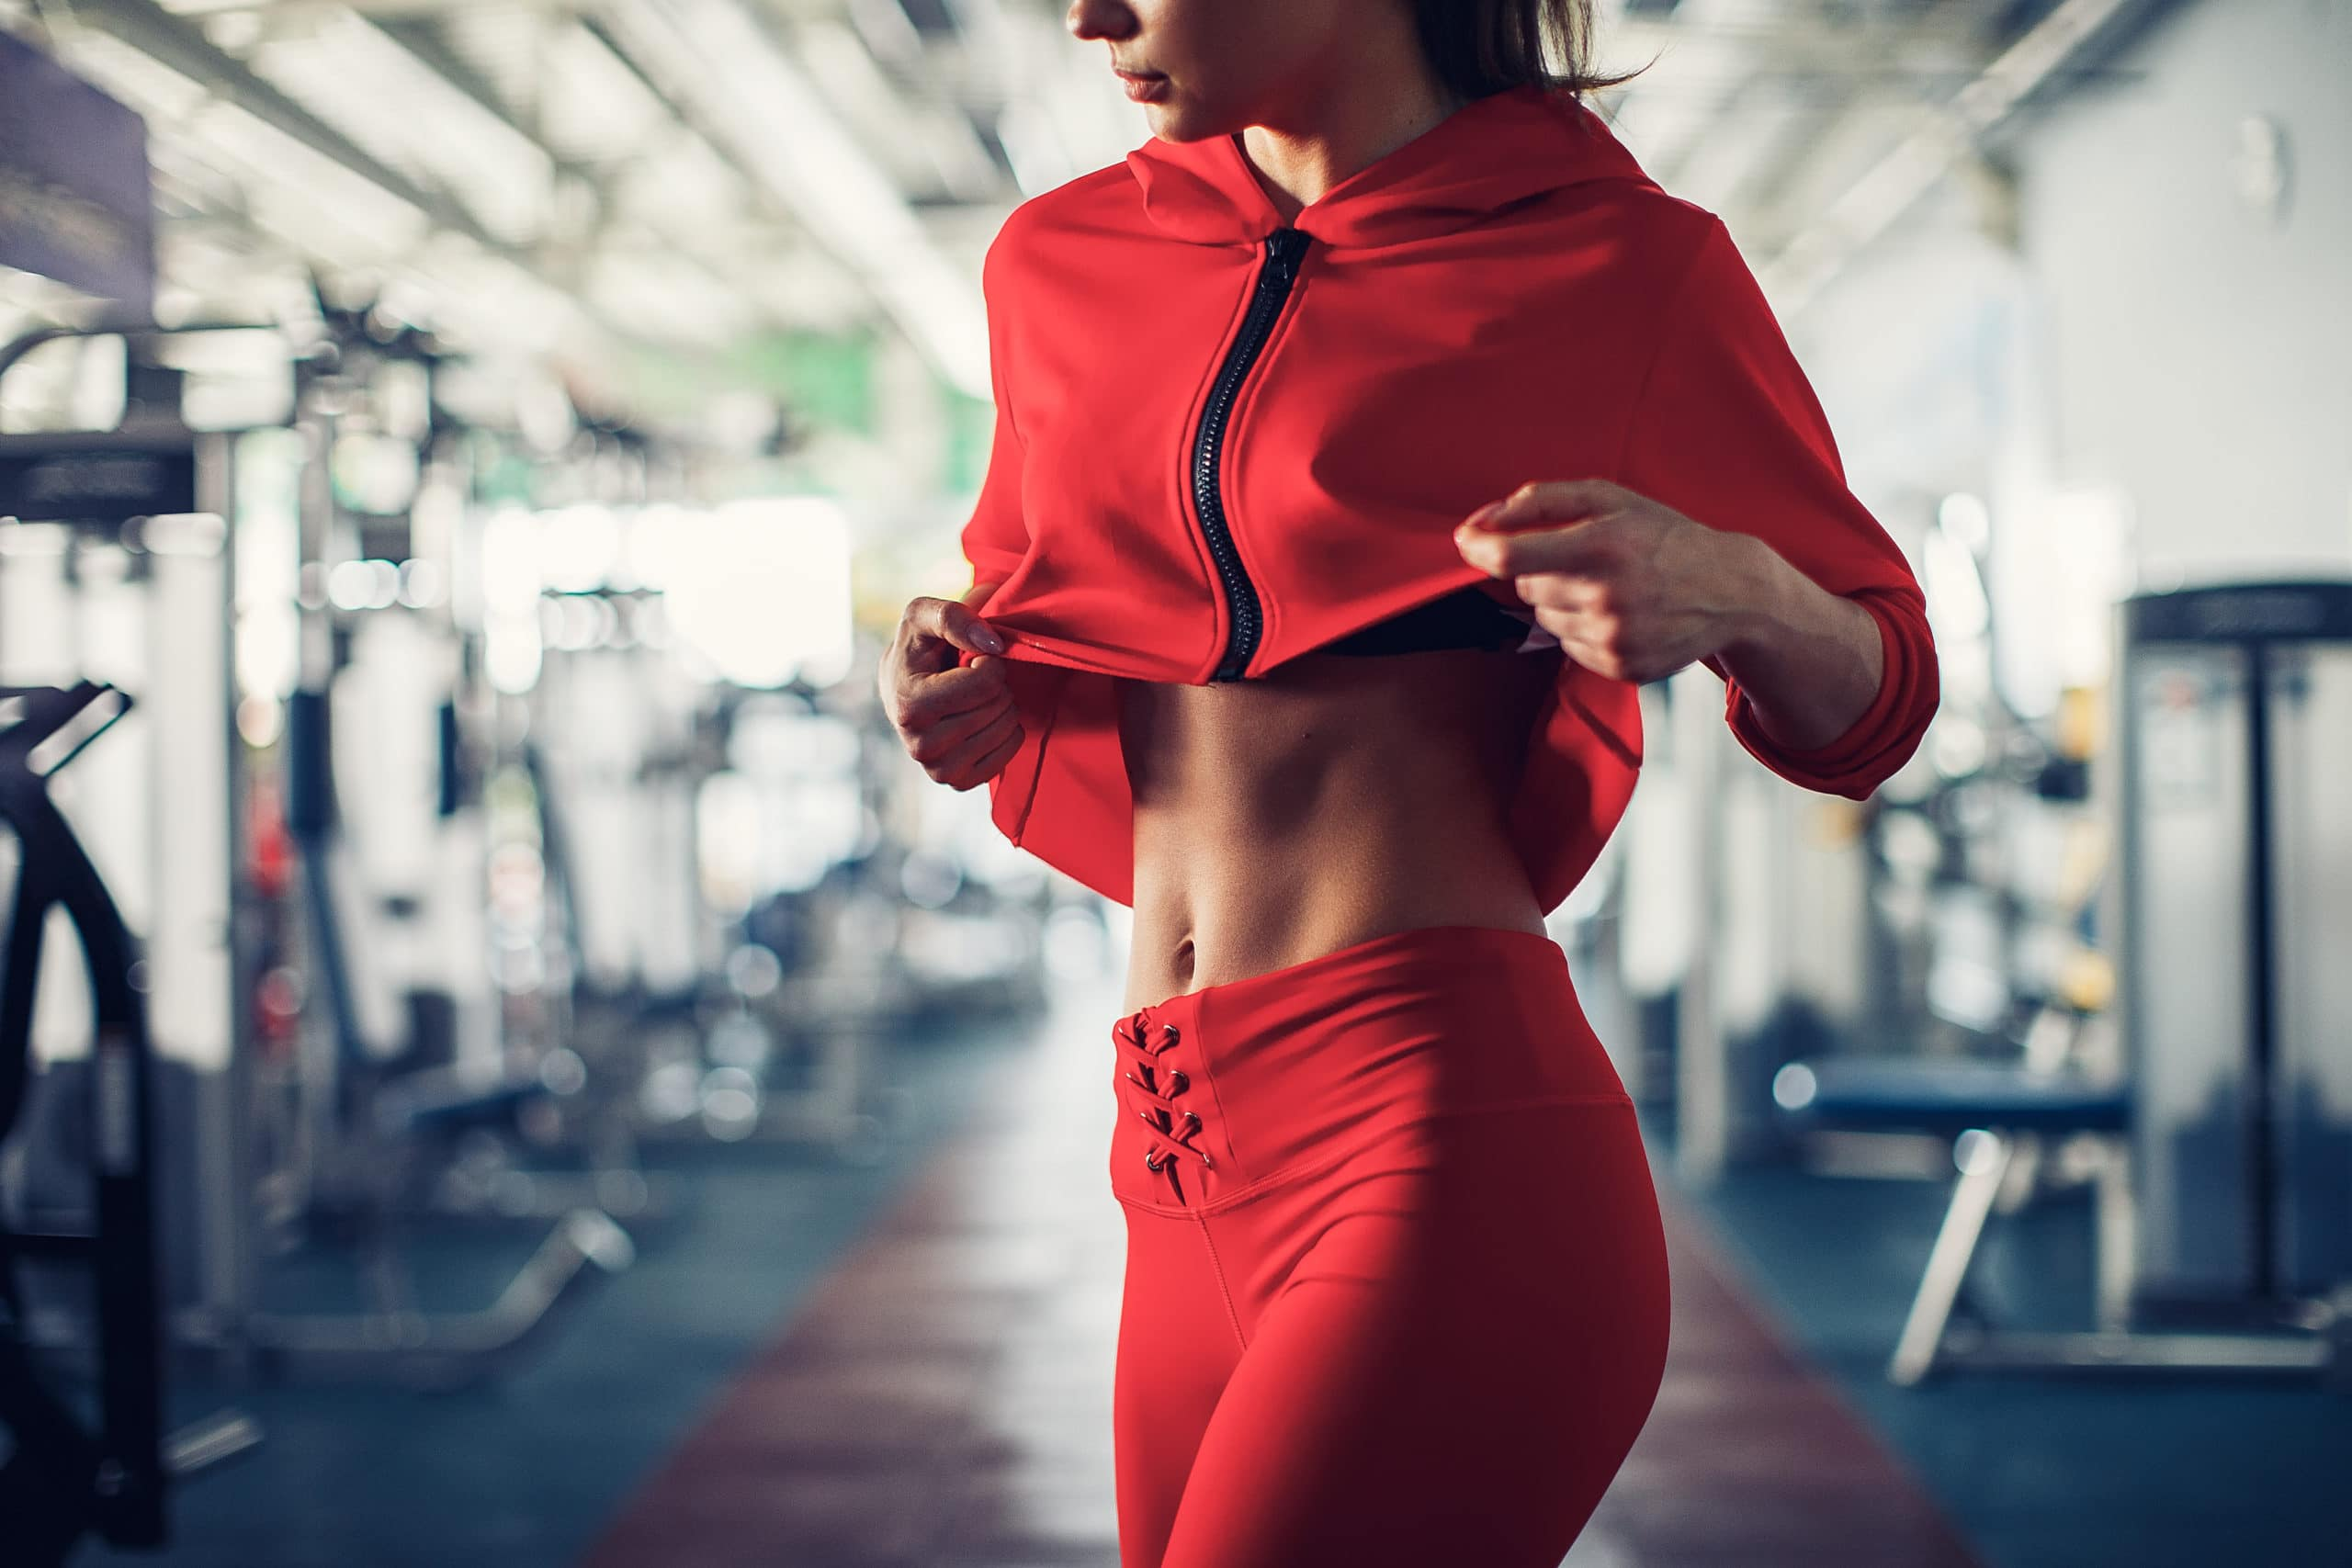 How to keep your belly flat?